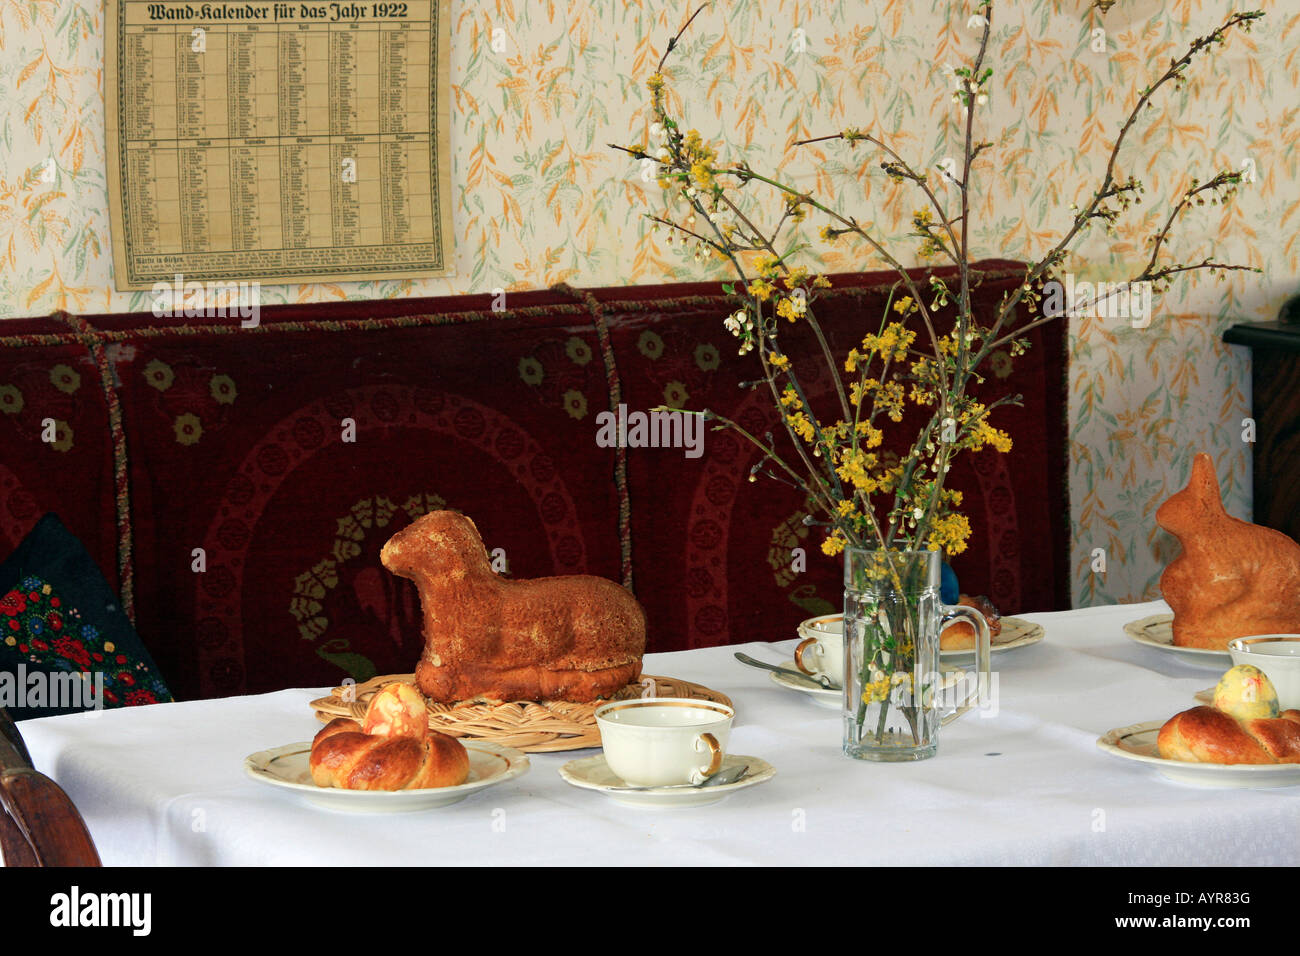 1920s living room, Easter decorations and baking, Hessenpark, Neu-Anspach, Taunus, Hesse, Germany - Stock Image